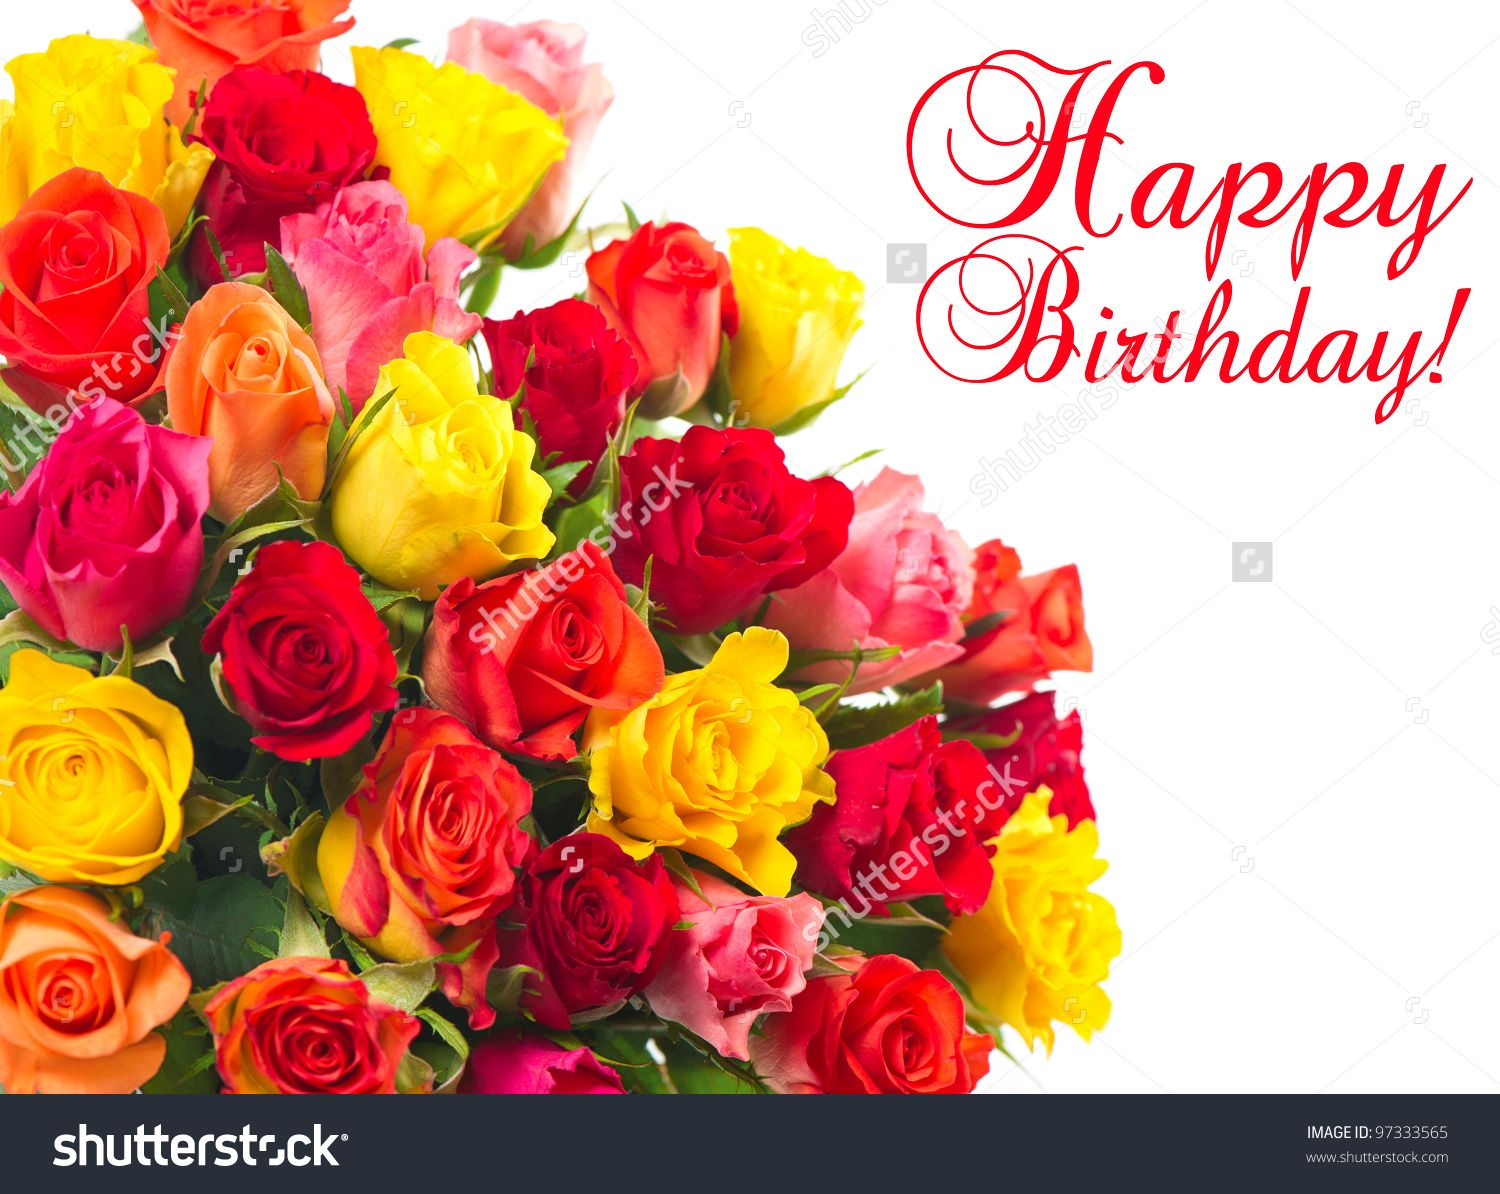 Happy Birthday Bouquet Flowers | Stock Flower Images | Pinterest ...